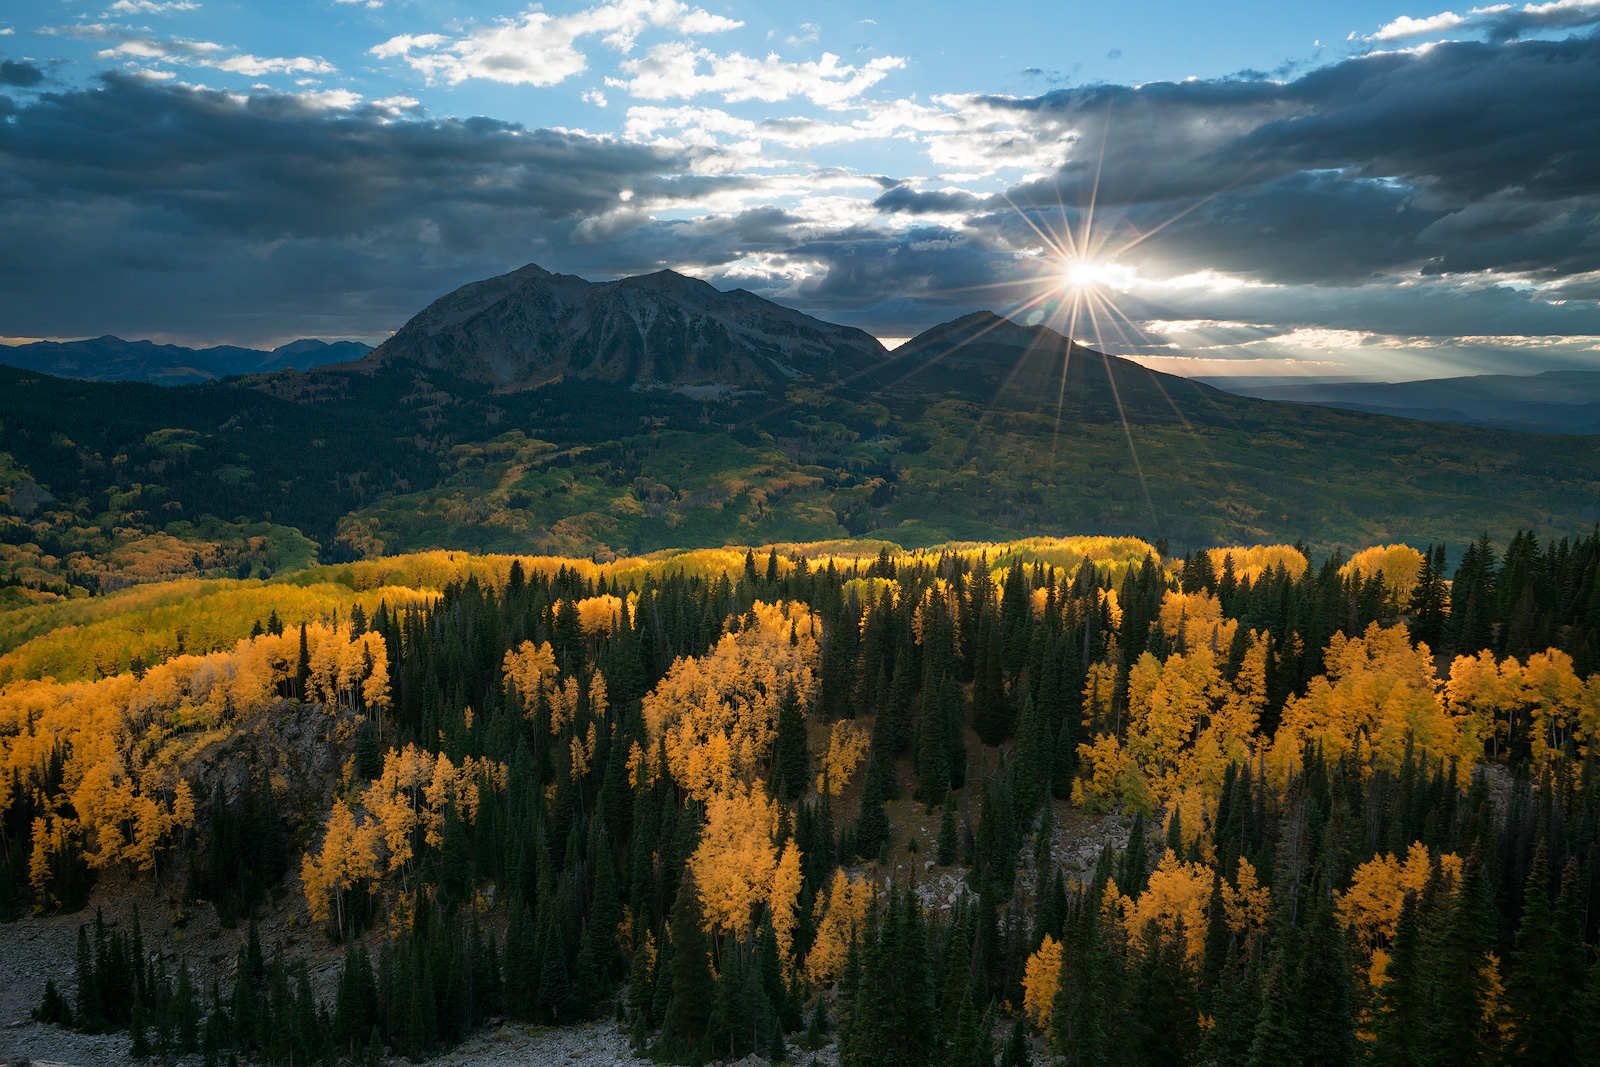 Colorado, Kebler Pass, aspen, autumn, fall, our planet, clouds, bernard chen, timescapes, golden, mountains, photo